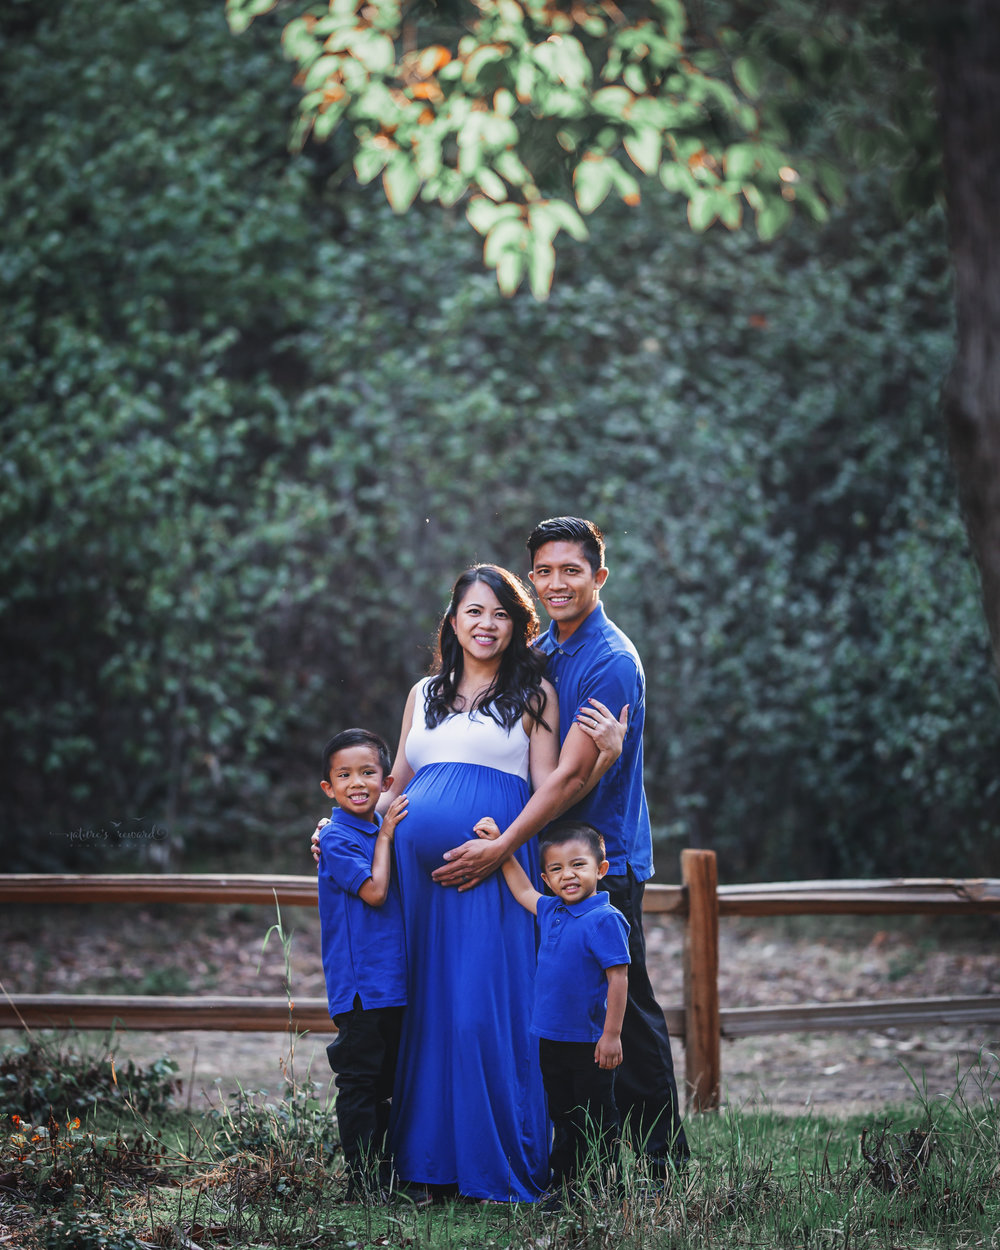 Gorgeous family celebrating the coming of a new baby to complete their family wearing blue to symbolize the gender of the baby in a park setting in this maternity session portrait by Nature's Reward Photography